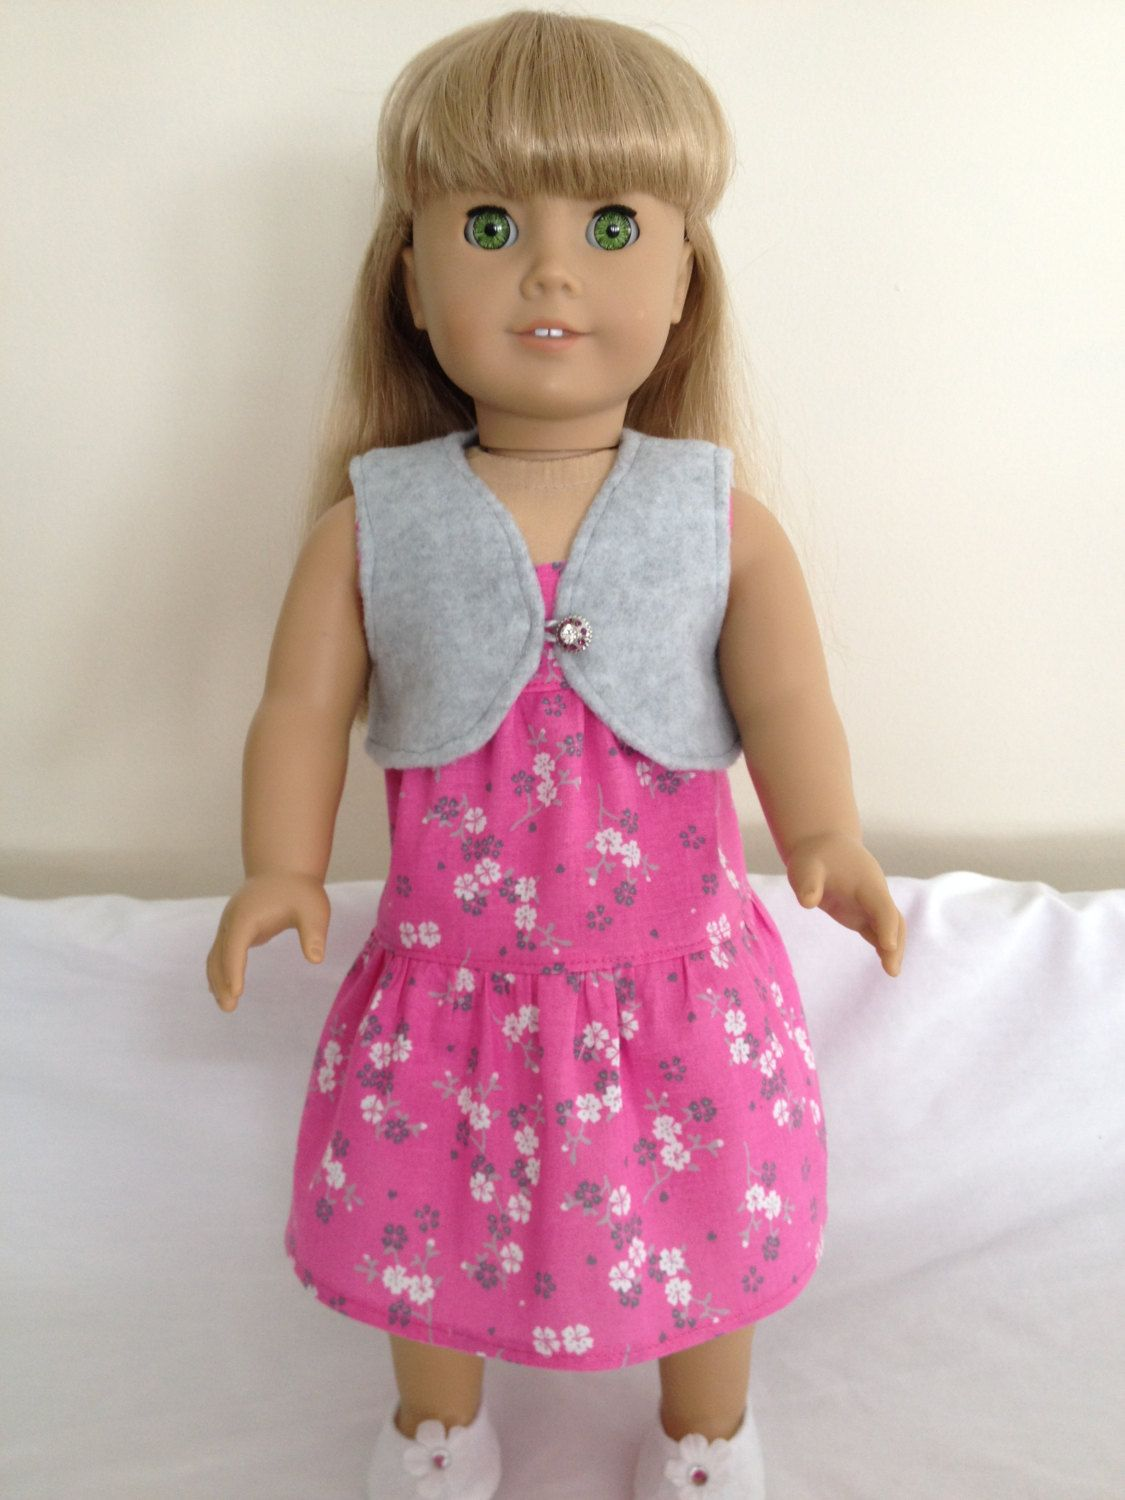 American Girl Doll Clothes Handmade Dress, Sleeveless, Pink and Gray Floral Print, Gray Fleece Shrug $20.00 by LeslieNLaura on Etsy